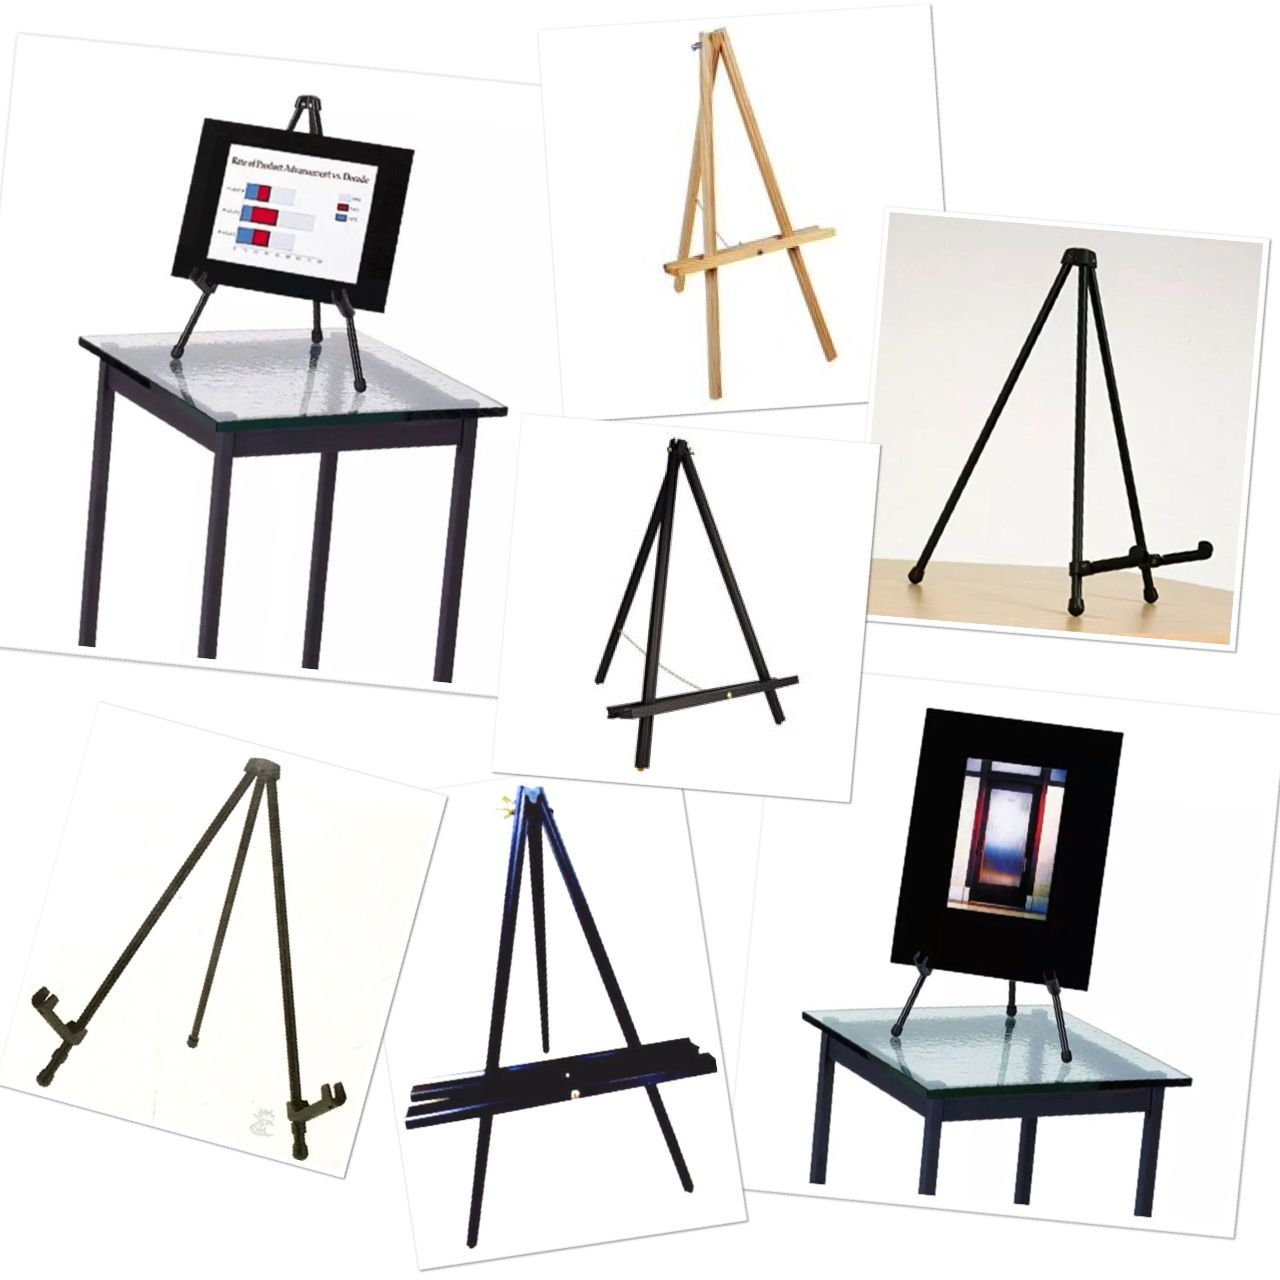 Craft Art Supplies Table Easel Portable Tabletop ARTISTS USEEASELSTO SUPPORT A PAINTING WHILE THEY WORK ON IT OR SOMETIMES TO DISPLAY FINISHED WORK. EASELS ARE AVAILABLE IN A WIDE RANGE OF STYLES AND SIZES, U.S. OFFICE SUPPLY TABLE EASEL, LIGHTWEIGHT, AND STURDY HOLDS CANVAS UP TO 15-INCH, WILL HOLD BOARDS TO 20-INCH BY 24-INCH STURDY TUBULAR LEGS WITH ANTI-SKID FEET FOLDS AND ASSEMBLES EASY AND INSTANTLY NO ASSEMBLY REQUIRED GREAT FOR SIGN & DISPLAY USE STRONG STEEL CONSTRUCTION SUPPORTS…